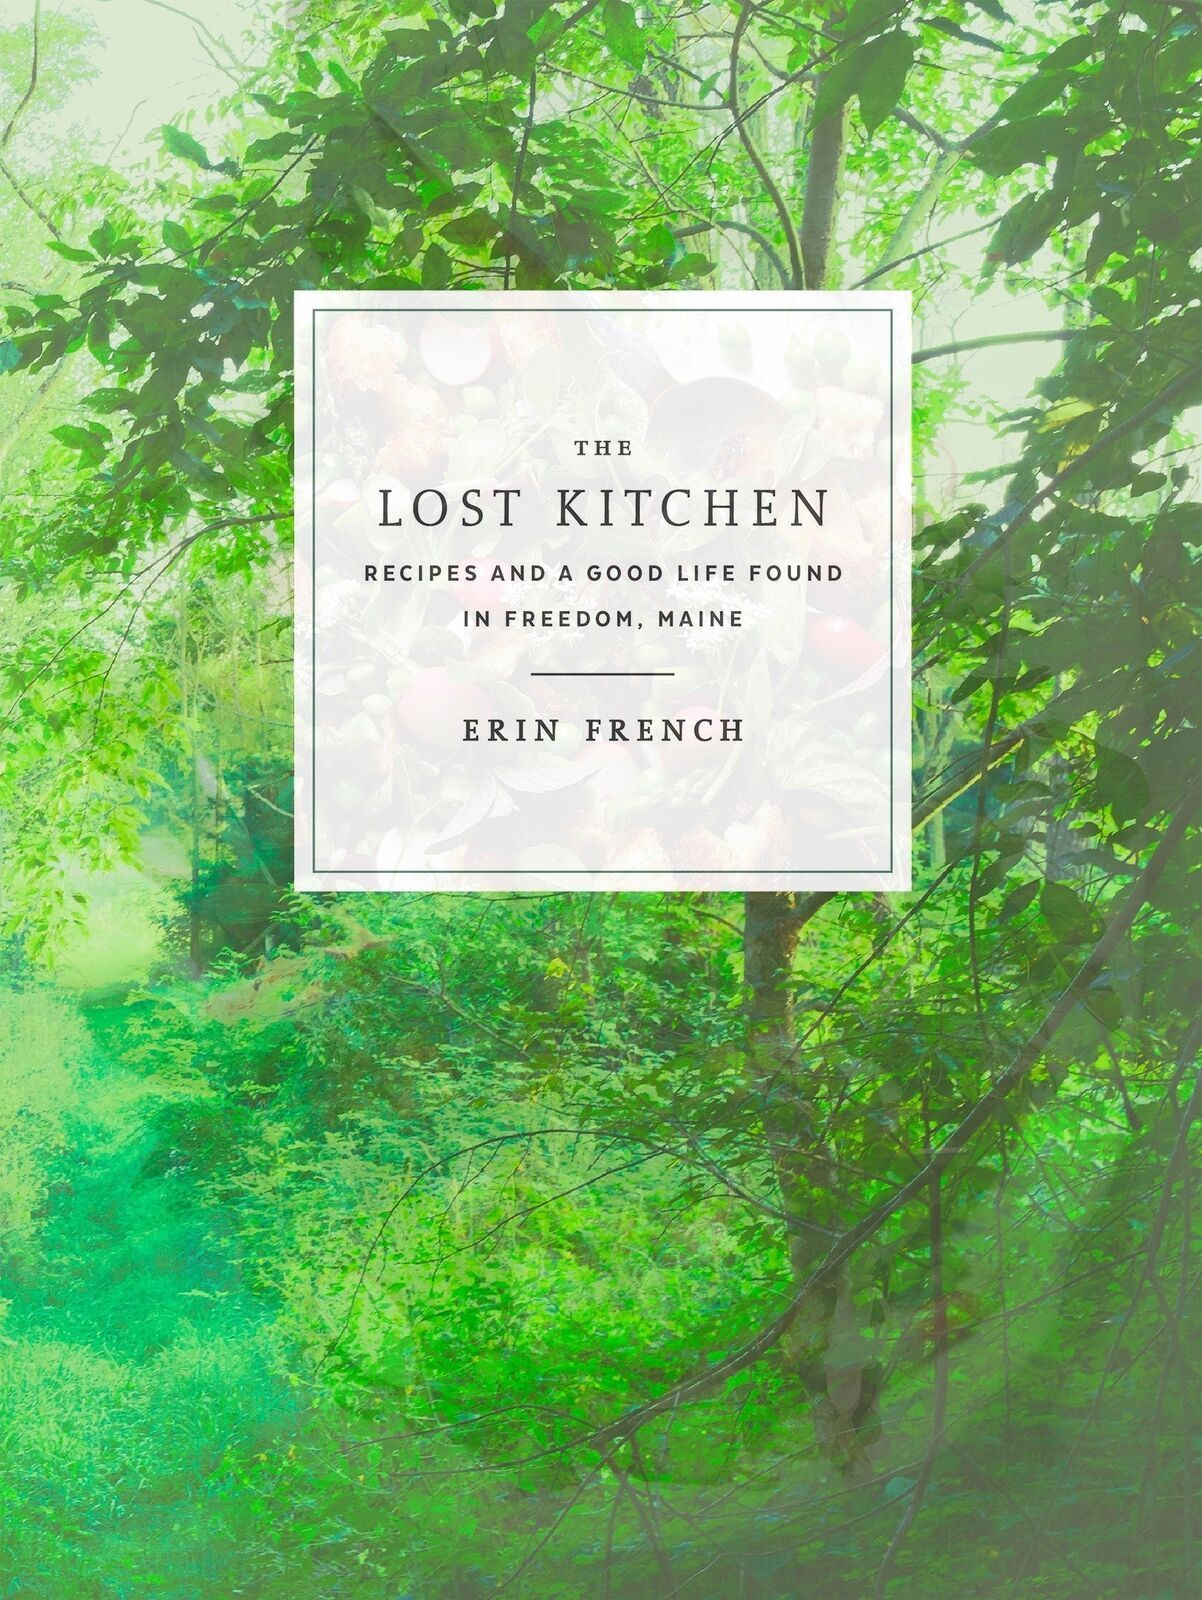 THE LOST KITCHEN: Recipes and a Good Life Found in Freedom, Maine(0553448439)